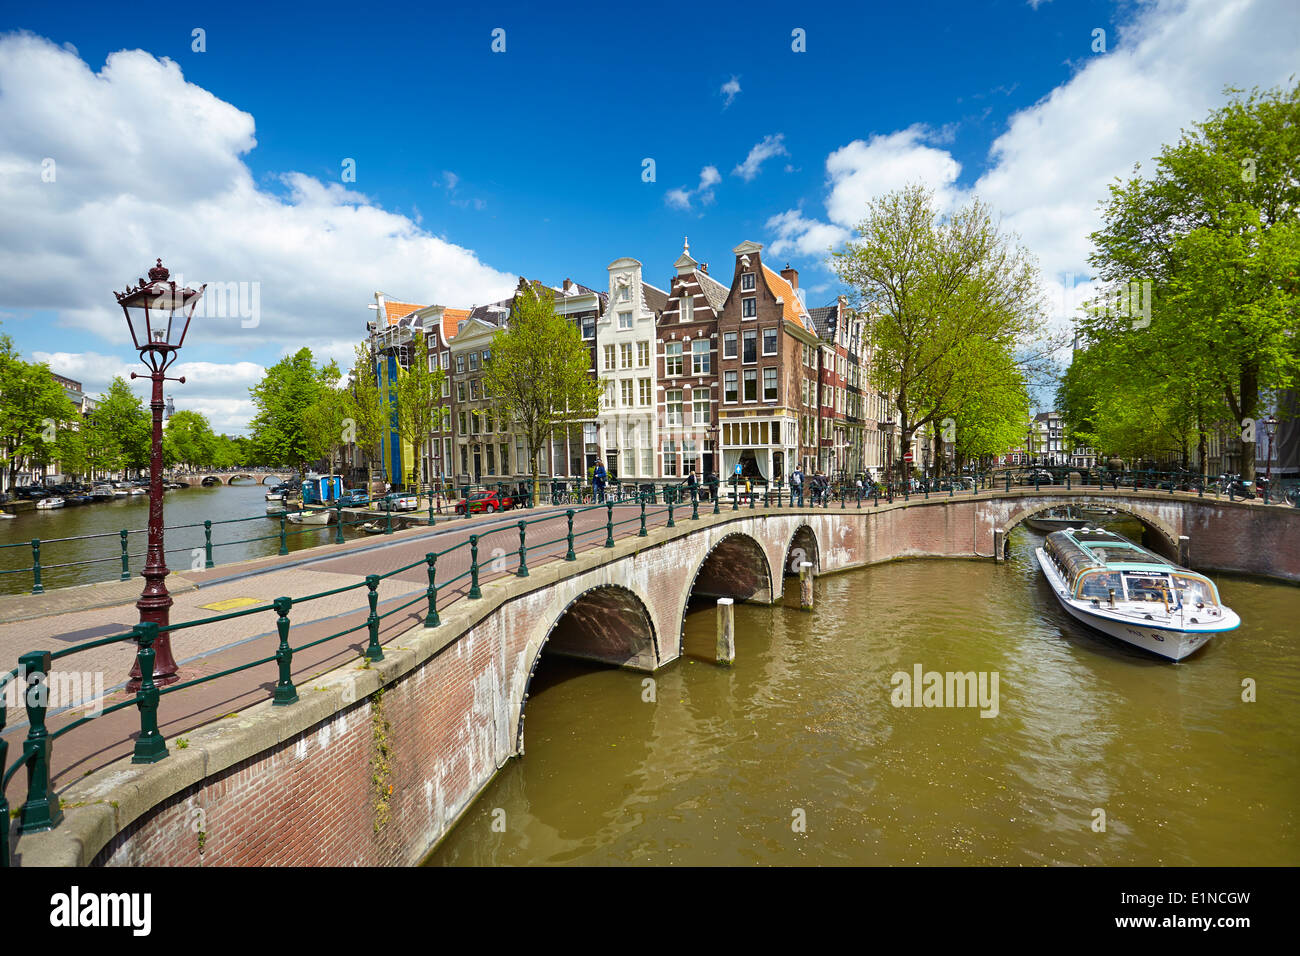 Canal Amsterdam - Hollande Pays-Bas Photo Stock